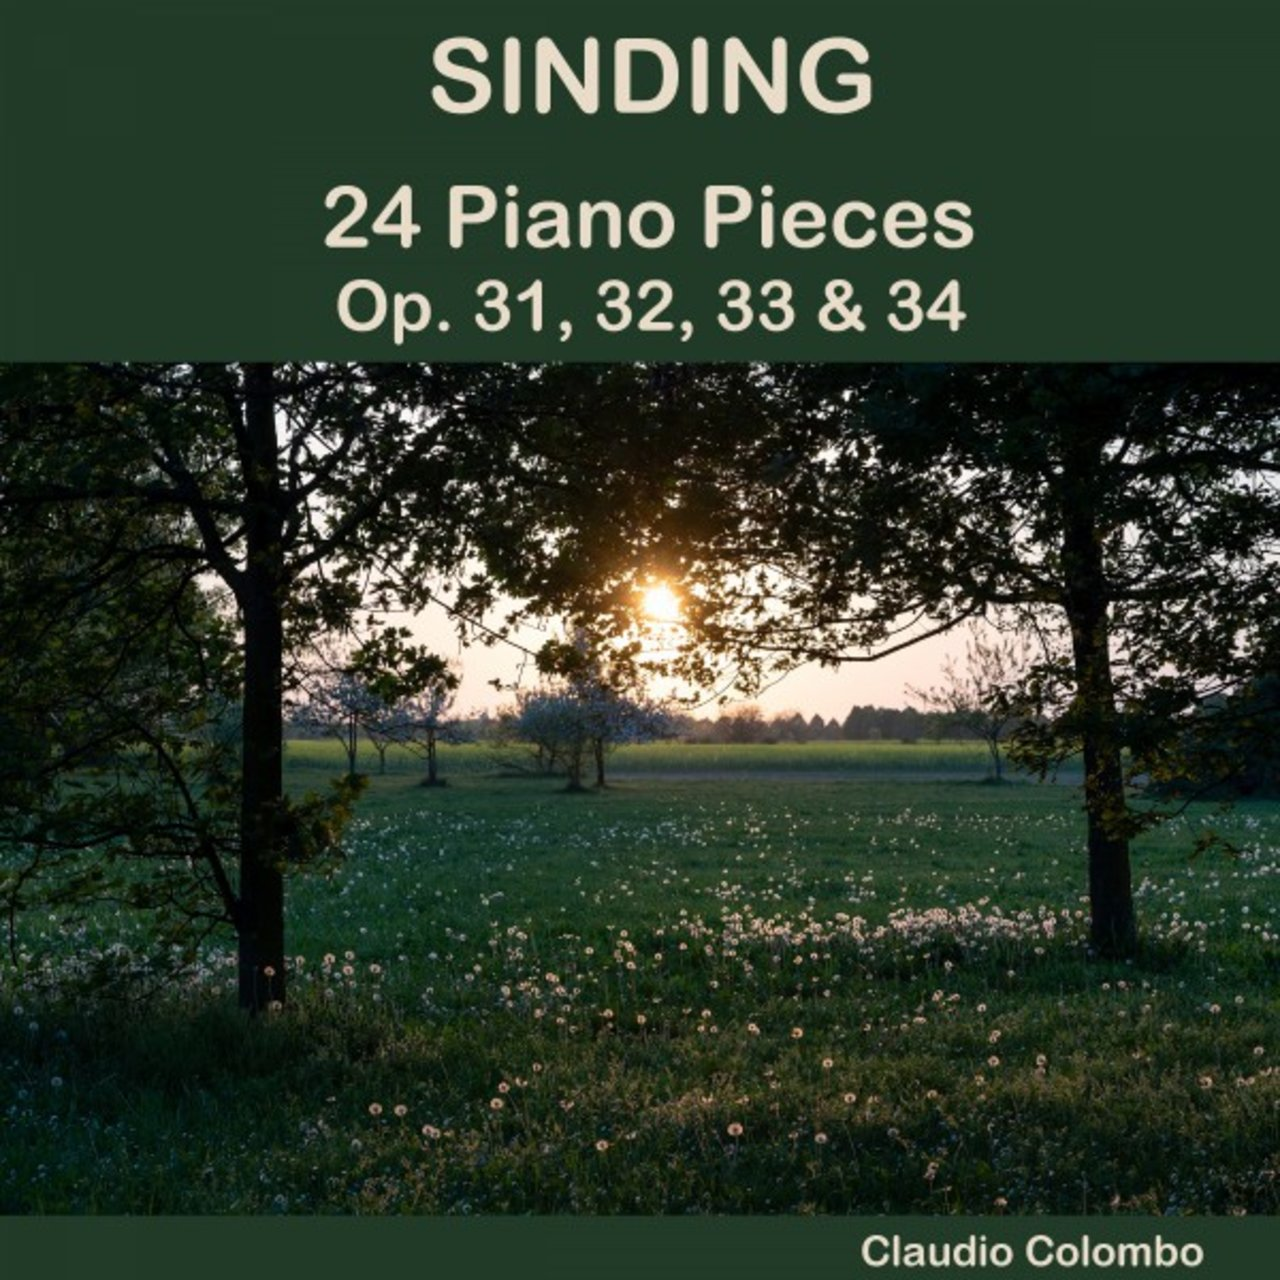 Sinding: 24 Piano Pieces, Op. 31, 32, 33 & 34